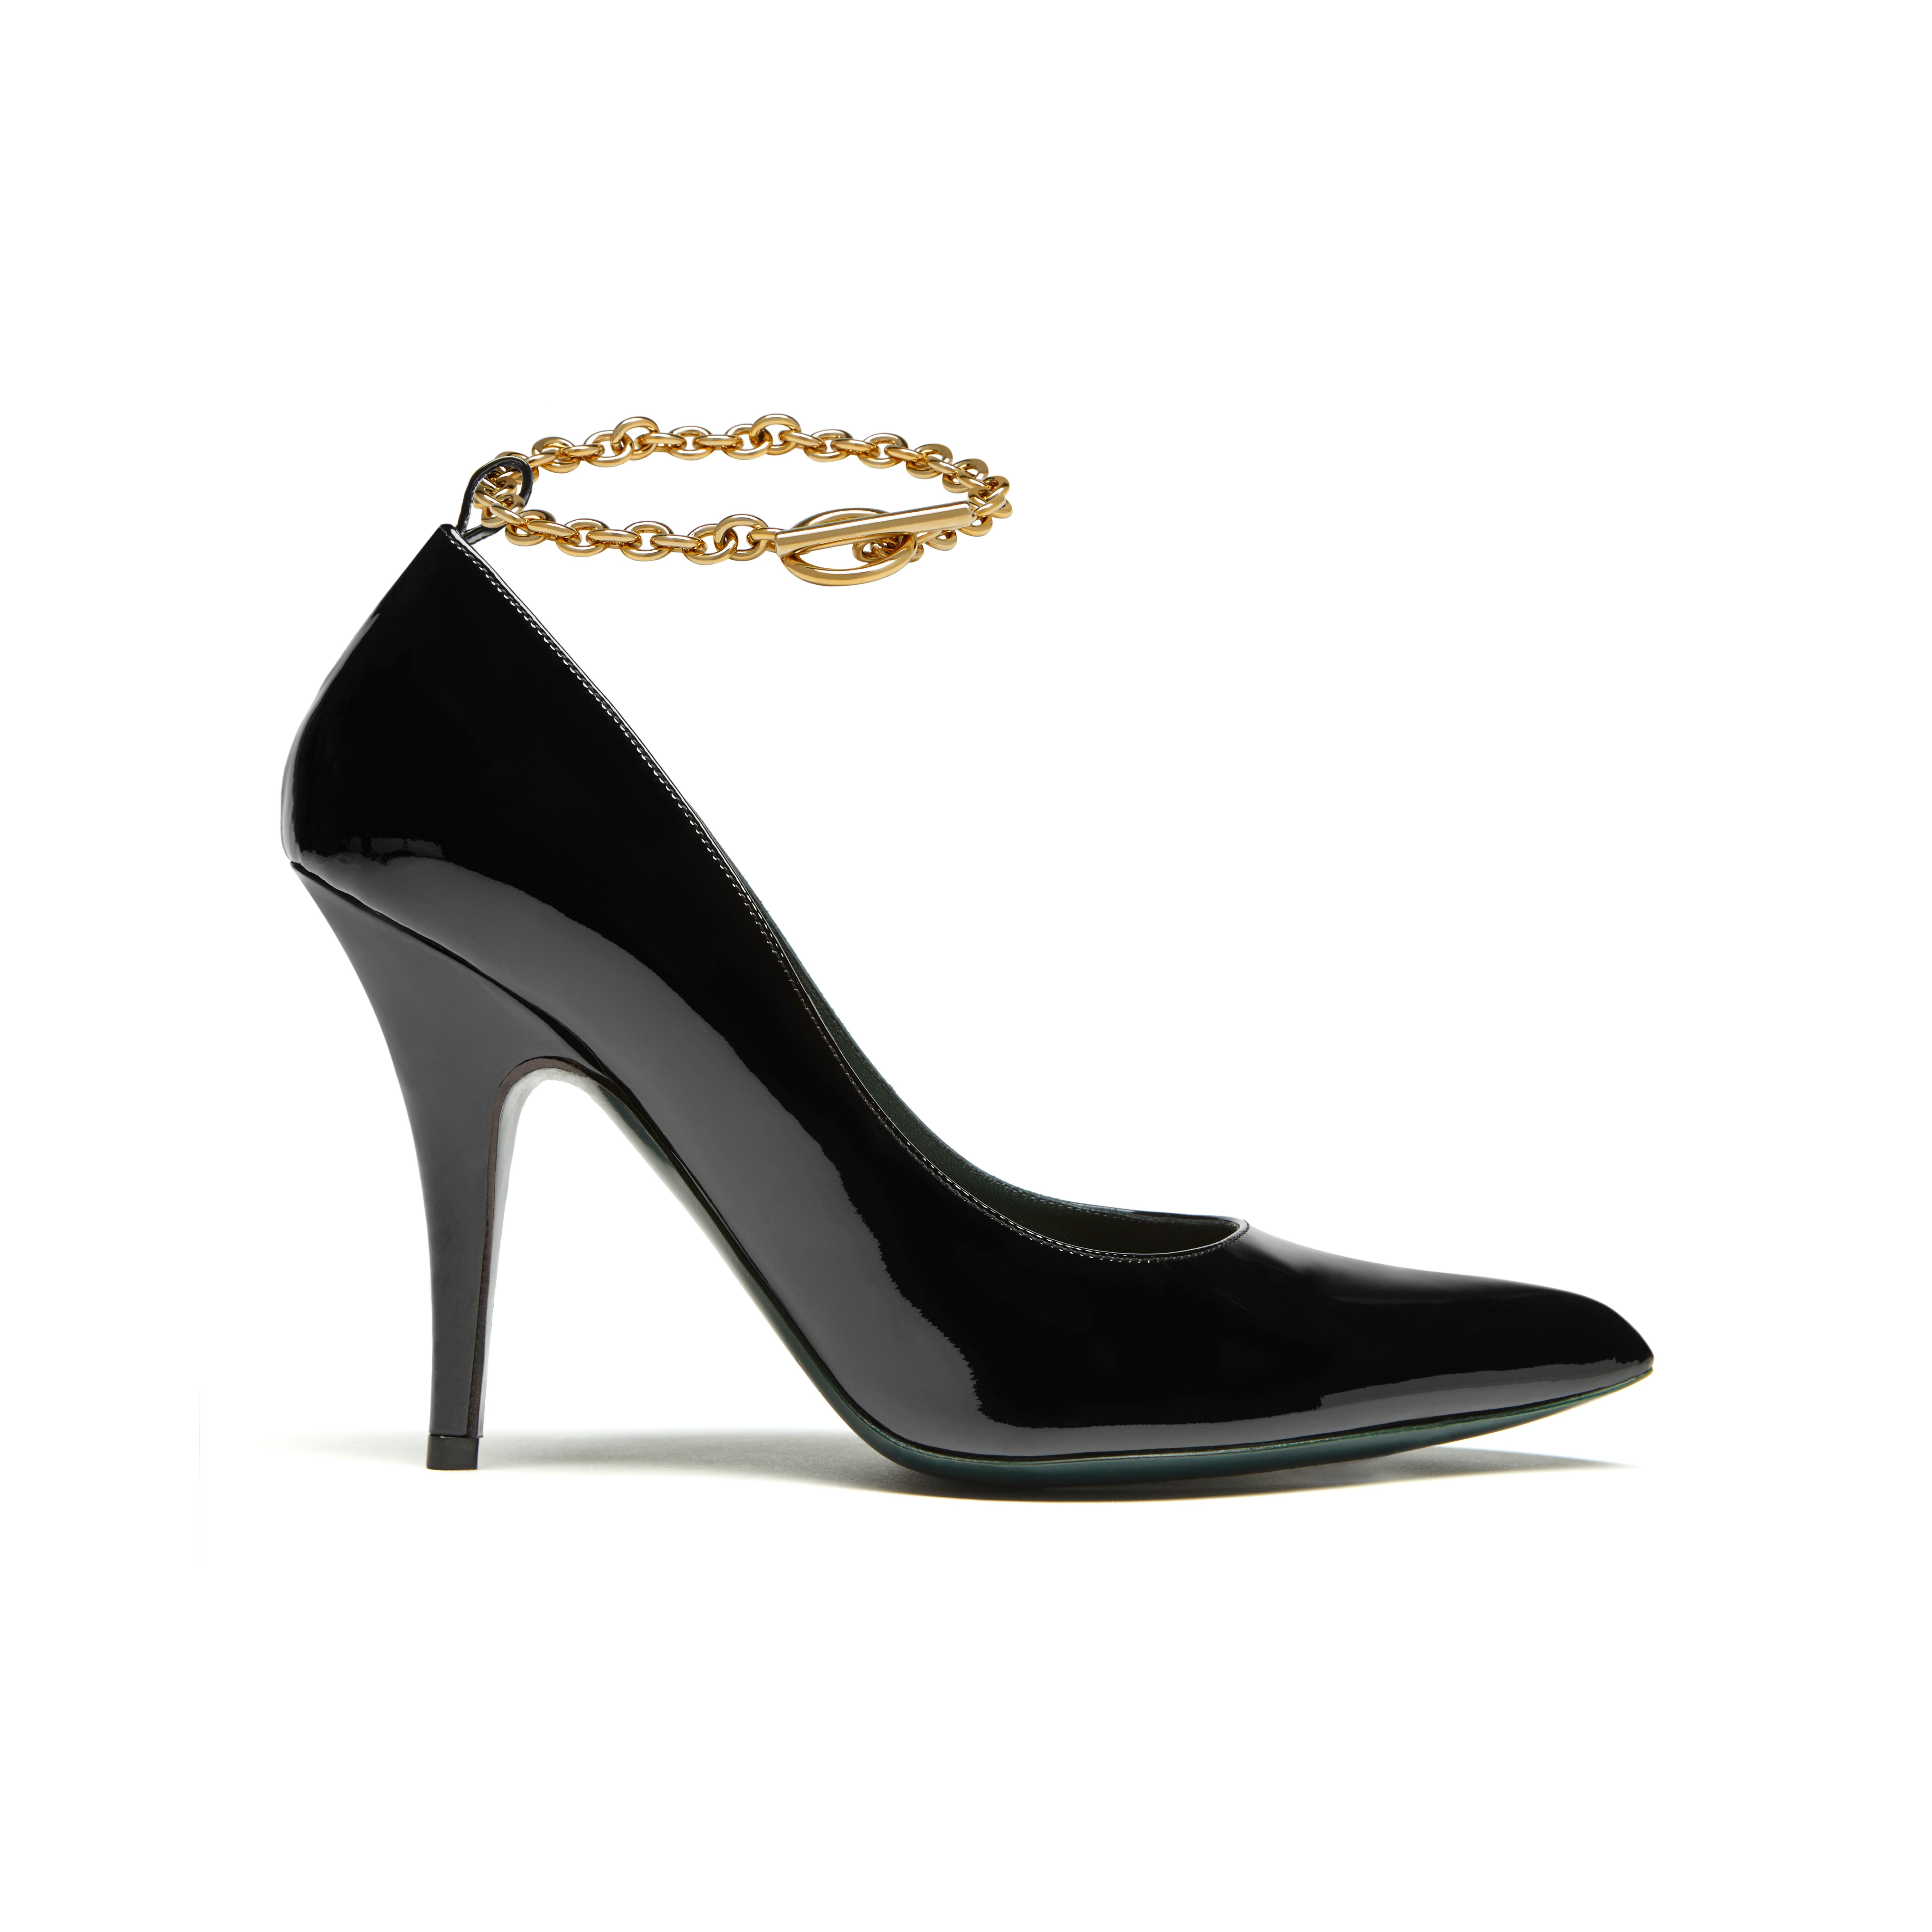 Mulberry Pointy Chain Pump in Black